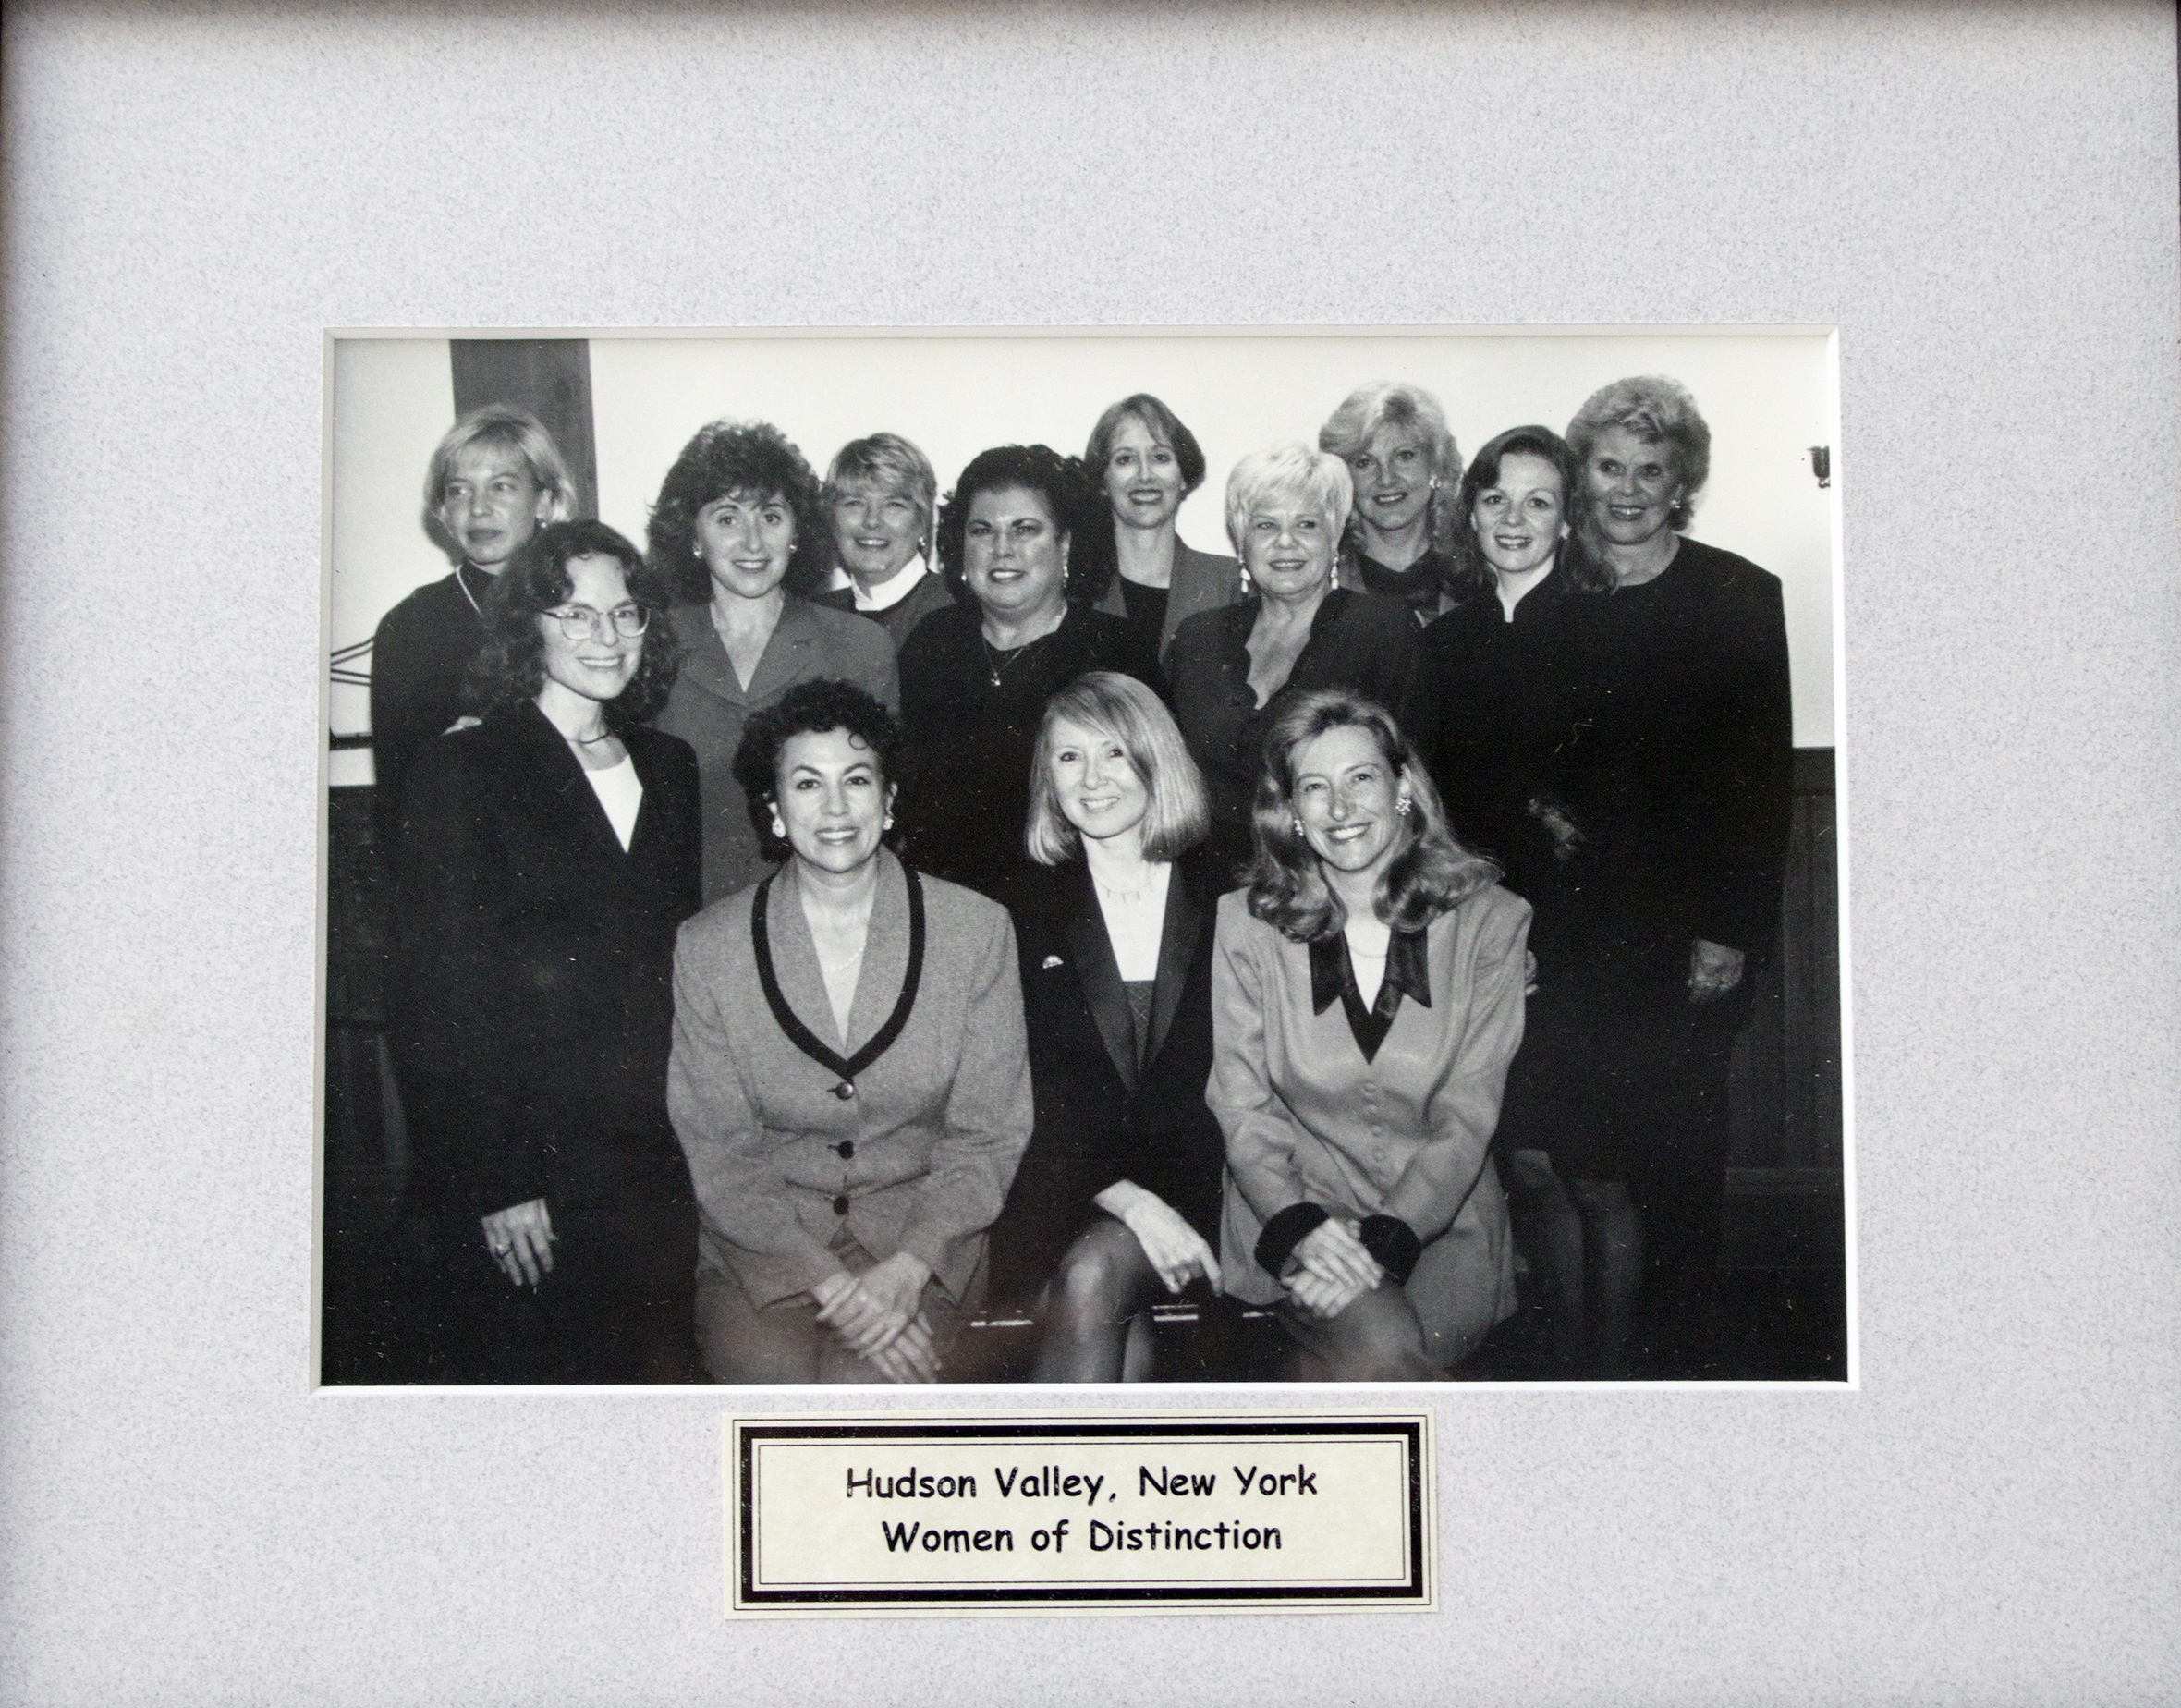 Women of Distinction